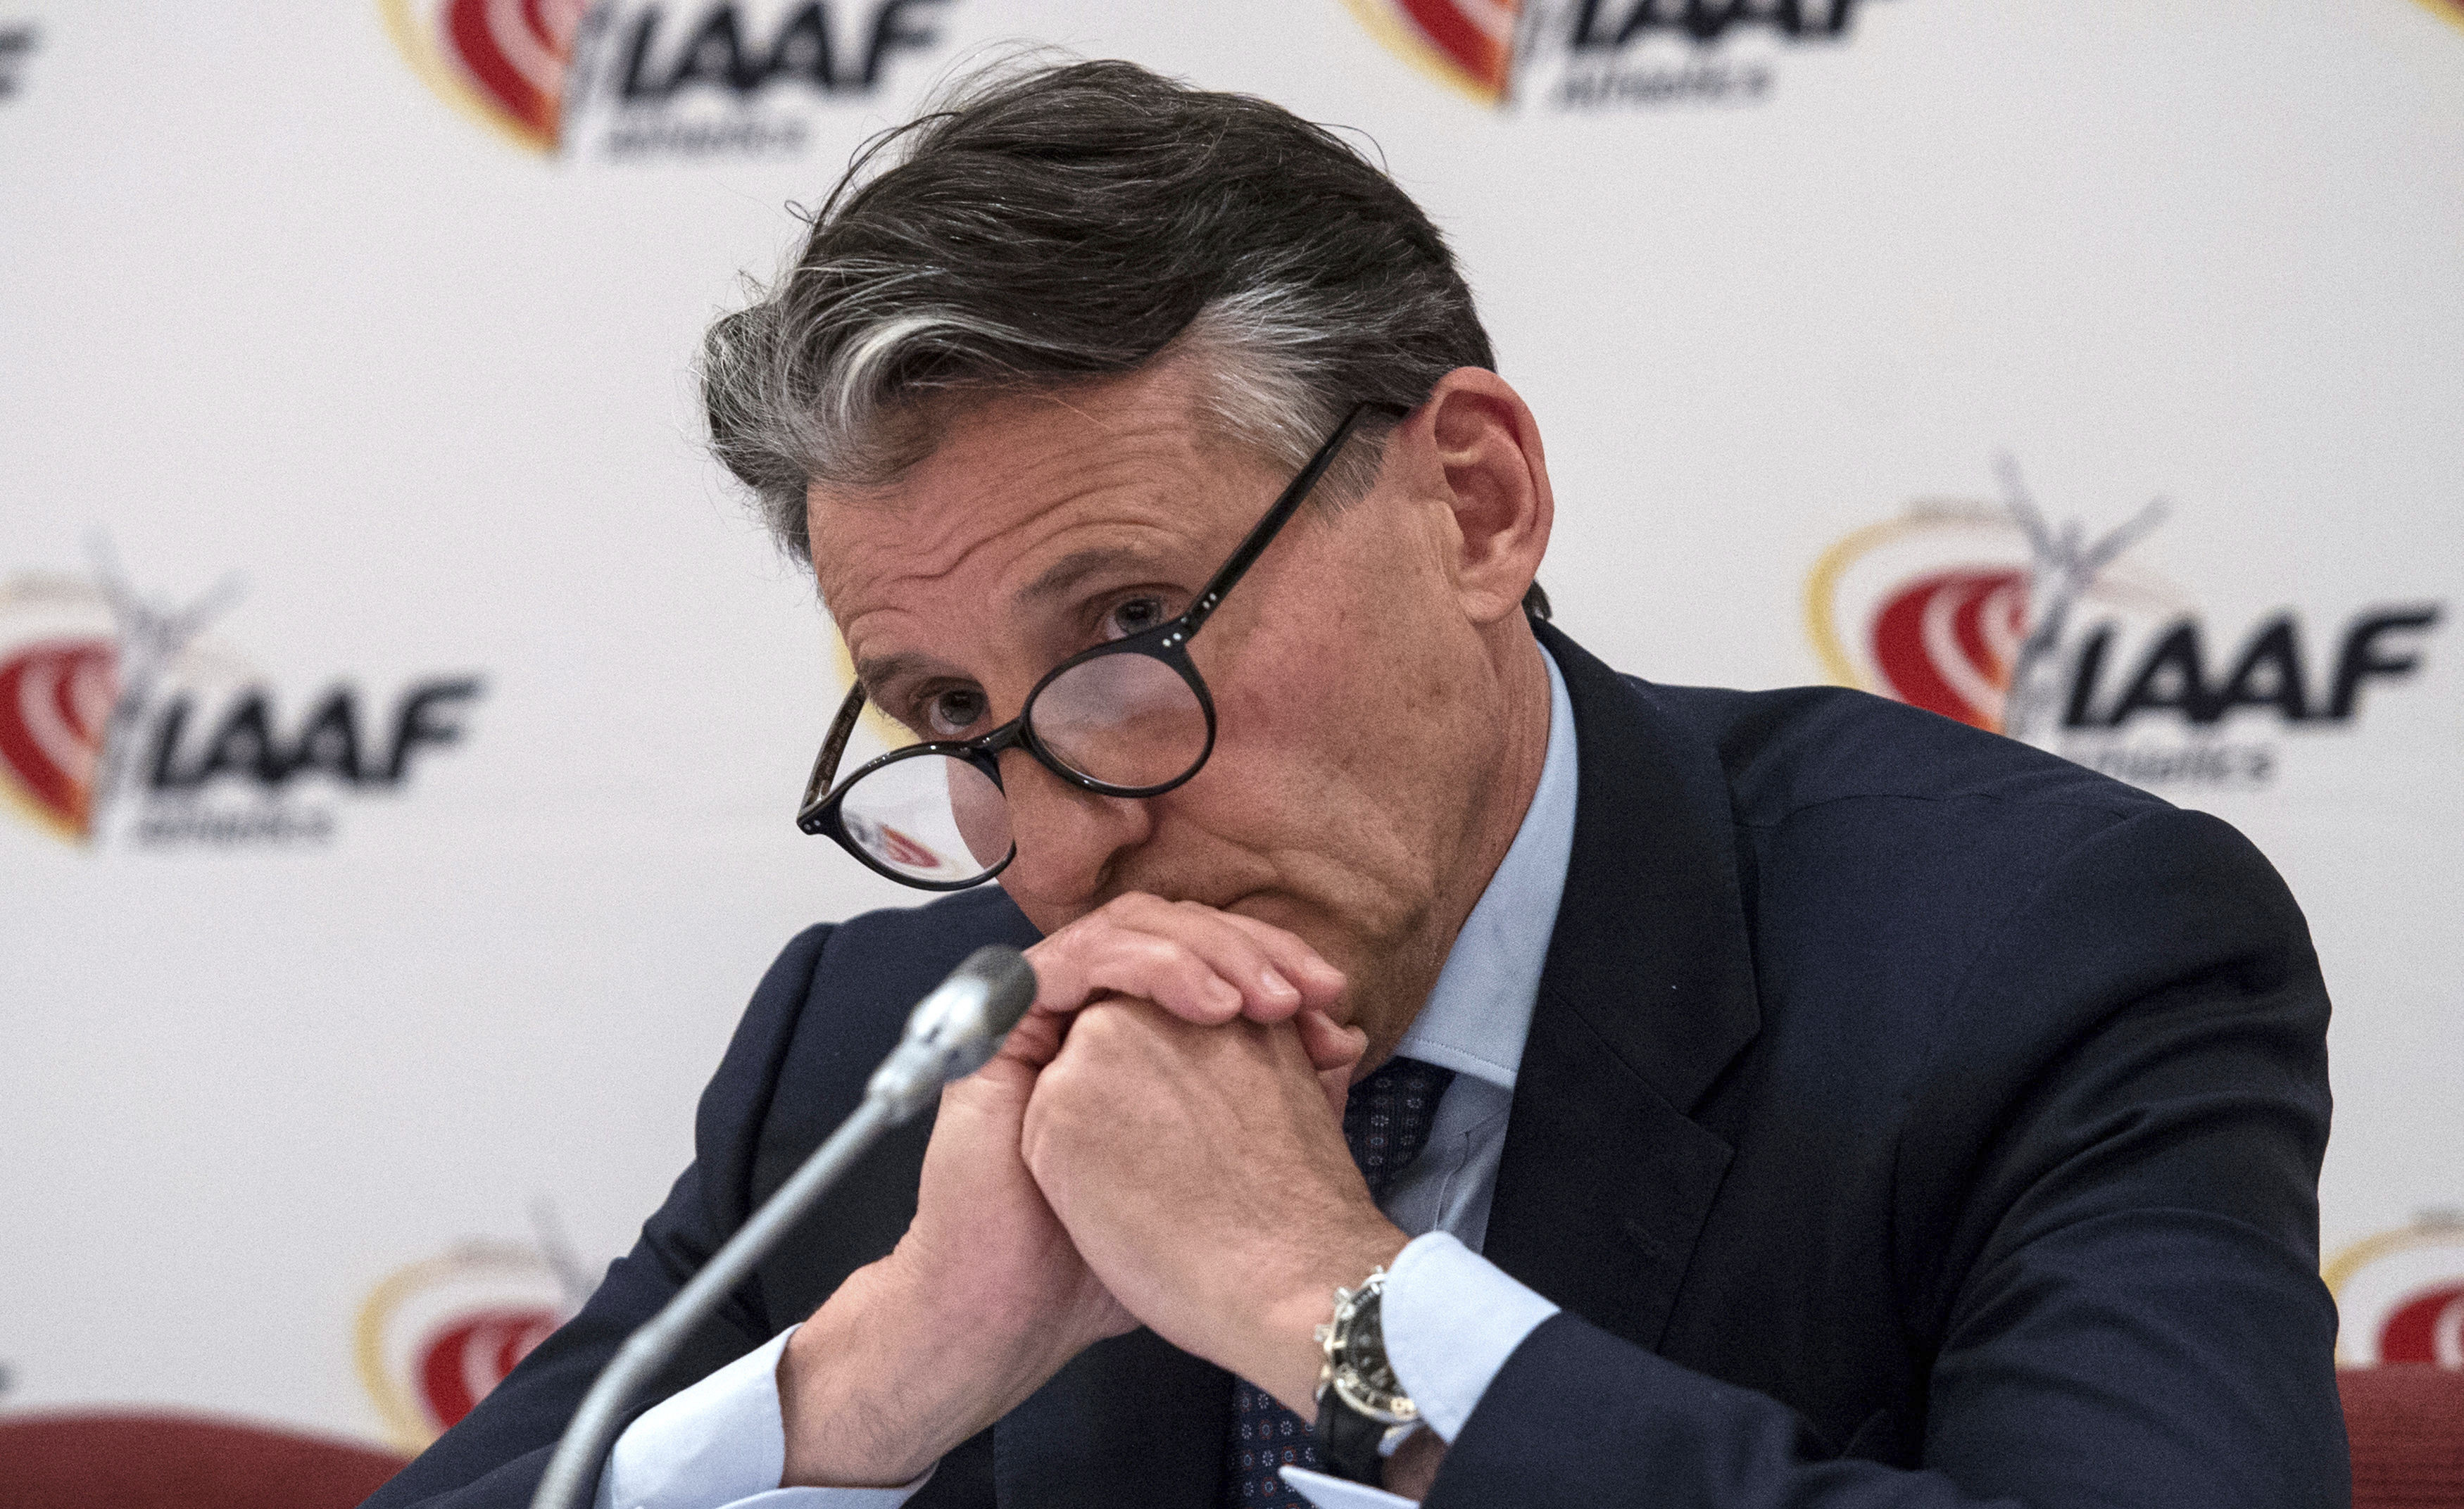 IAAF President Lord Sebastian Coe listens to a reporter's question during a press conference in London, Thursday April 13. (Lauren Hurley/PA via AP)